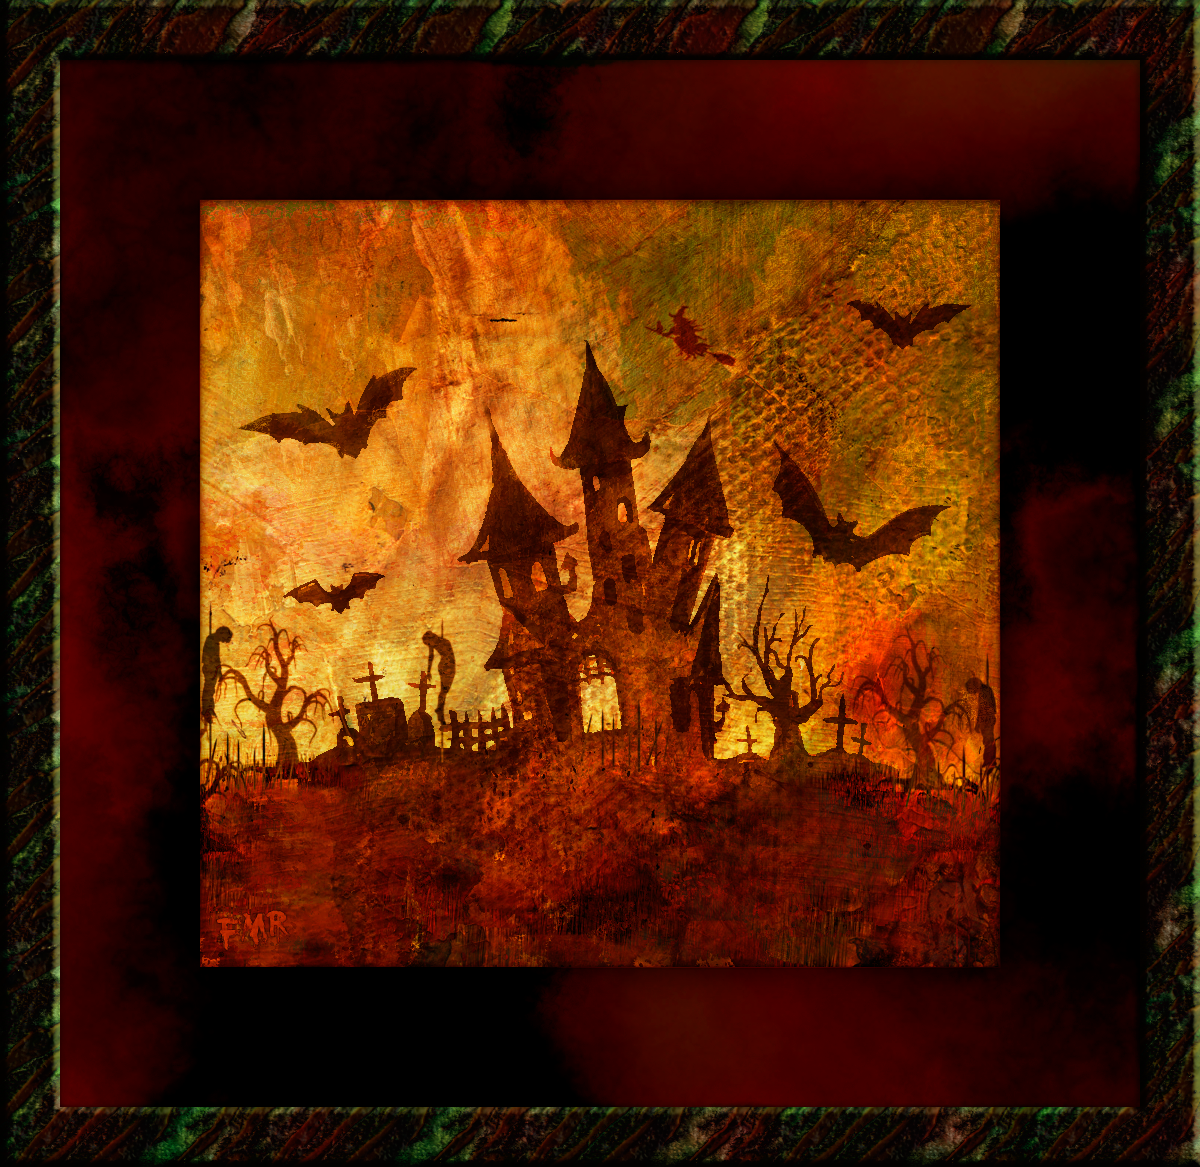 Halloween Scary Night by Saltwater